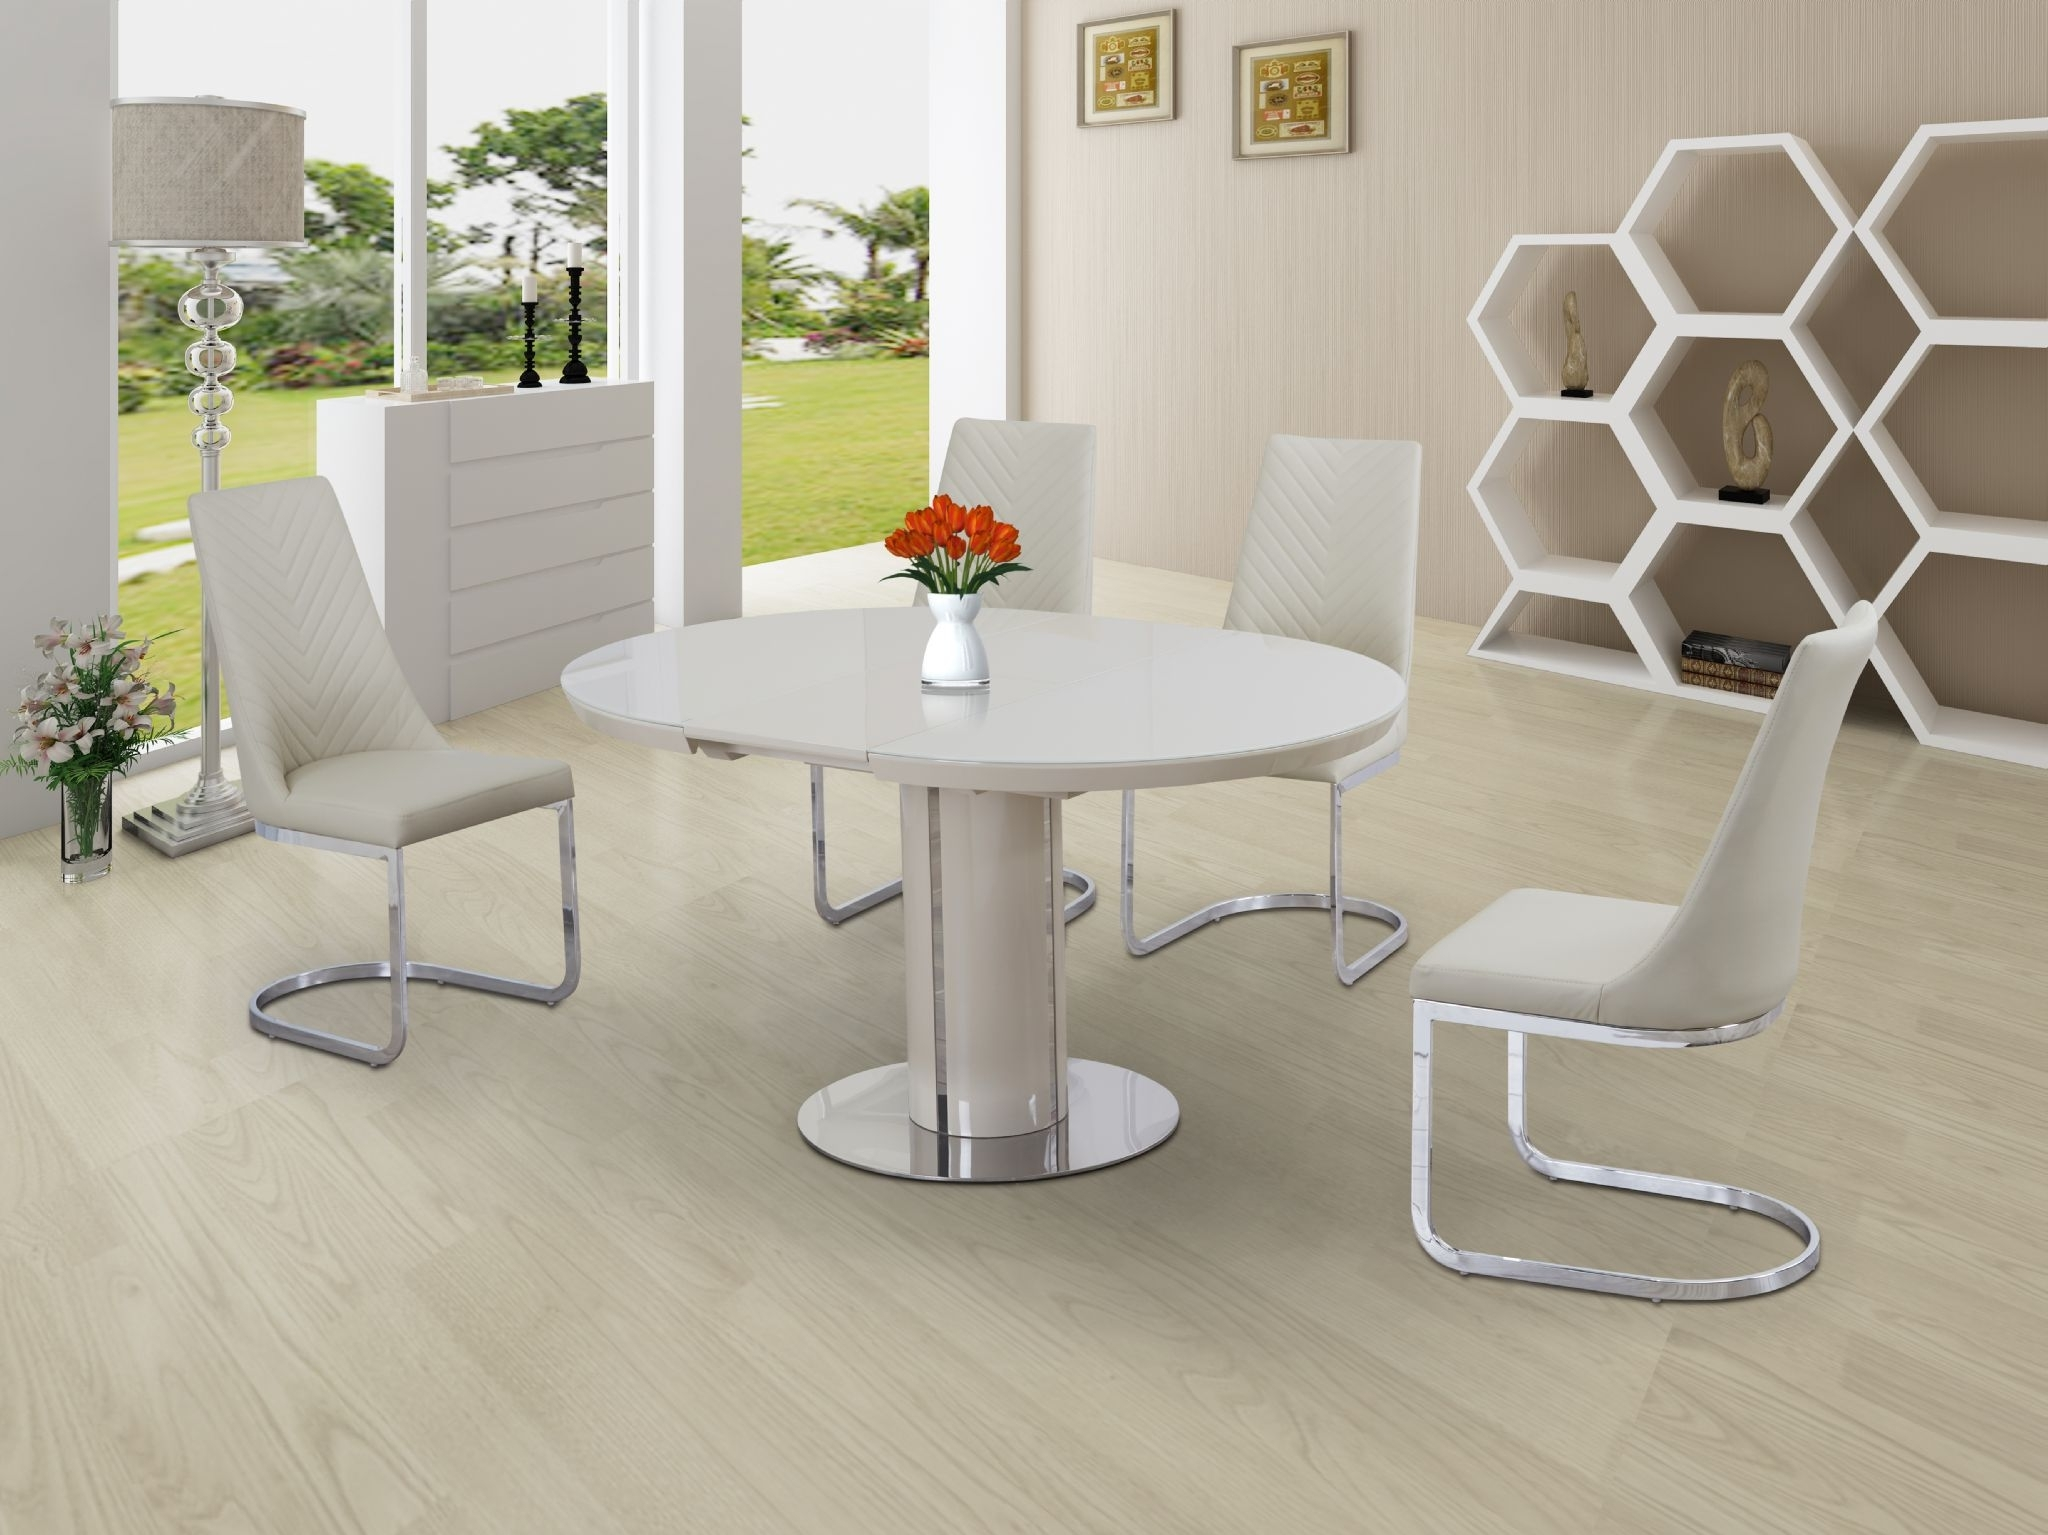 Buy Small Round Extendable Dining Table Today For Current Round Extending Dining Tables Sets (View 5 of 25)